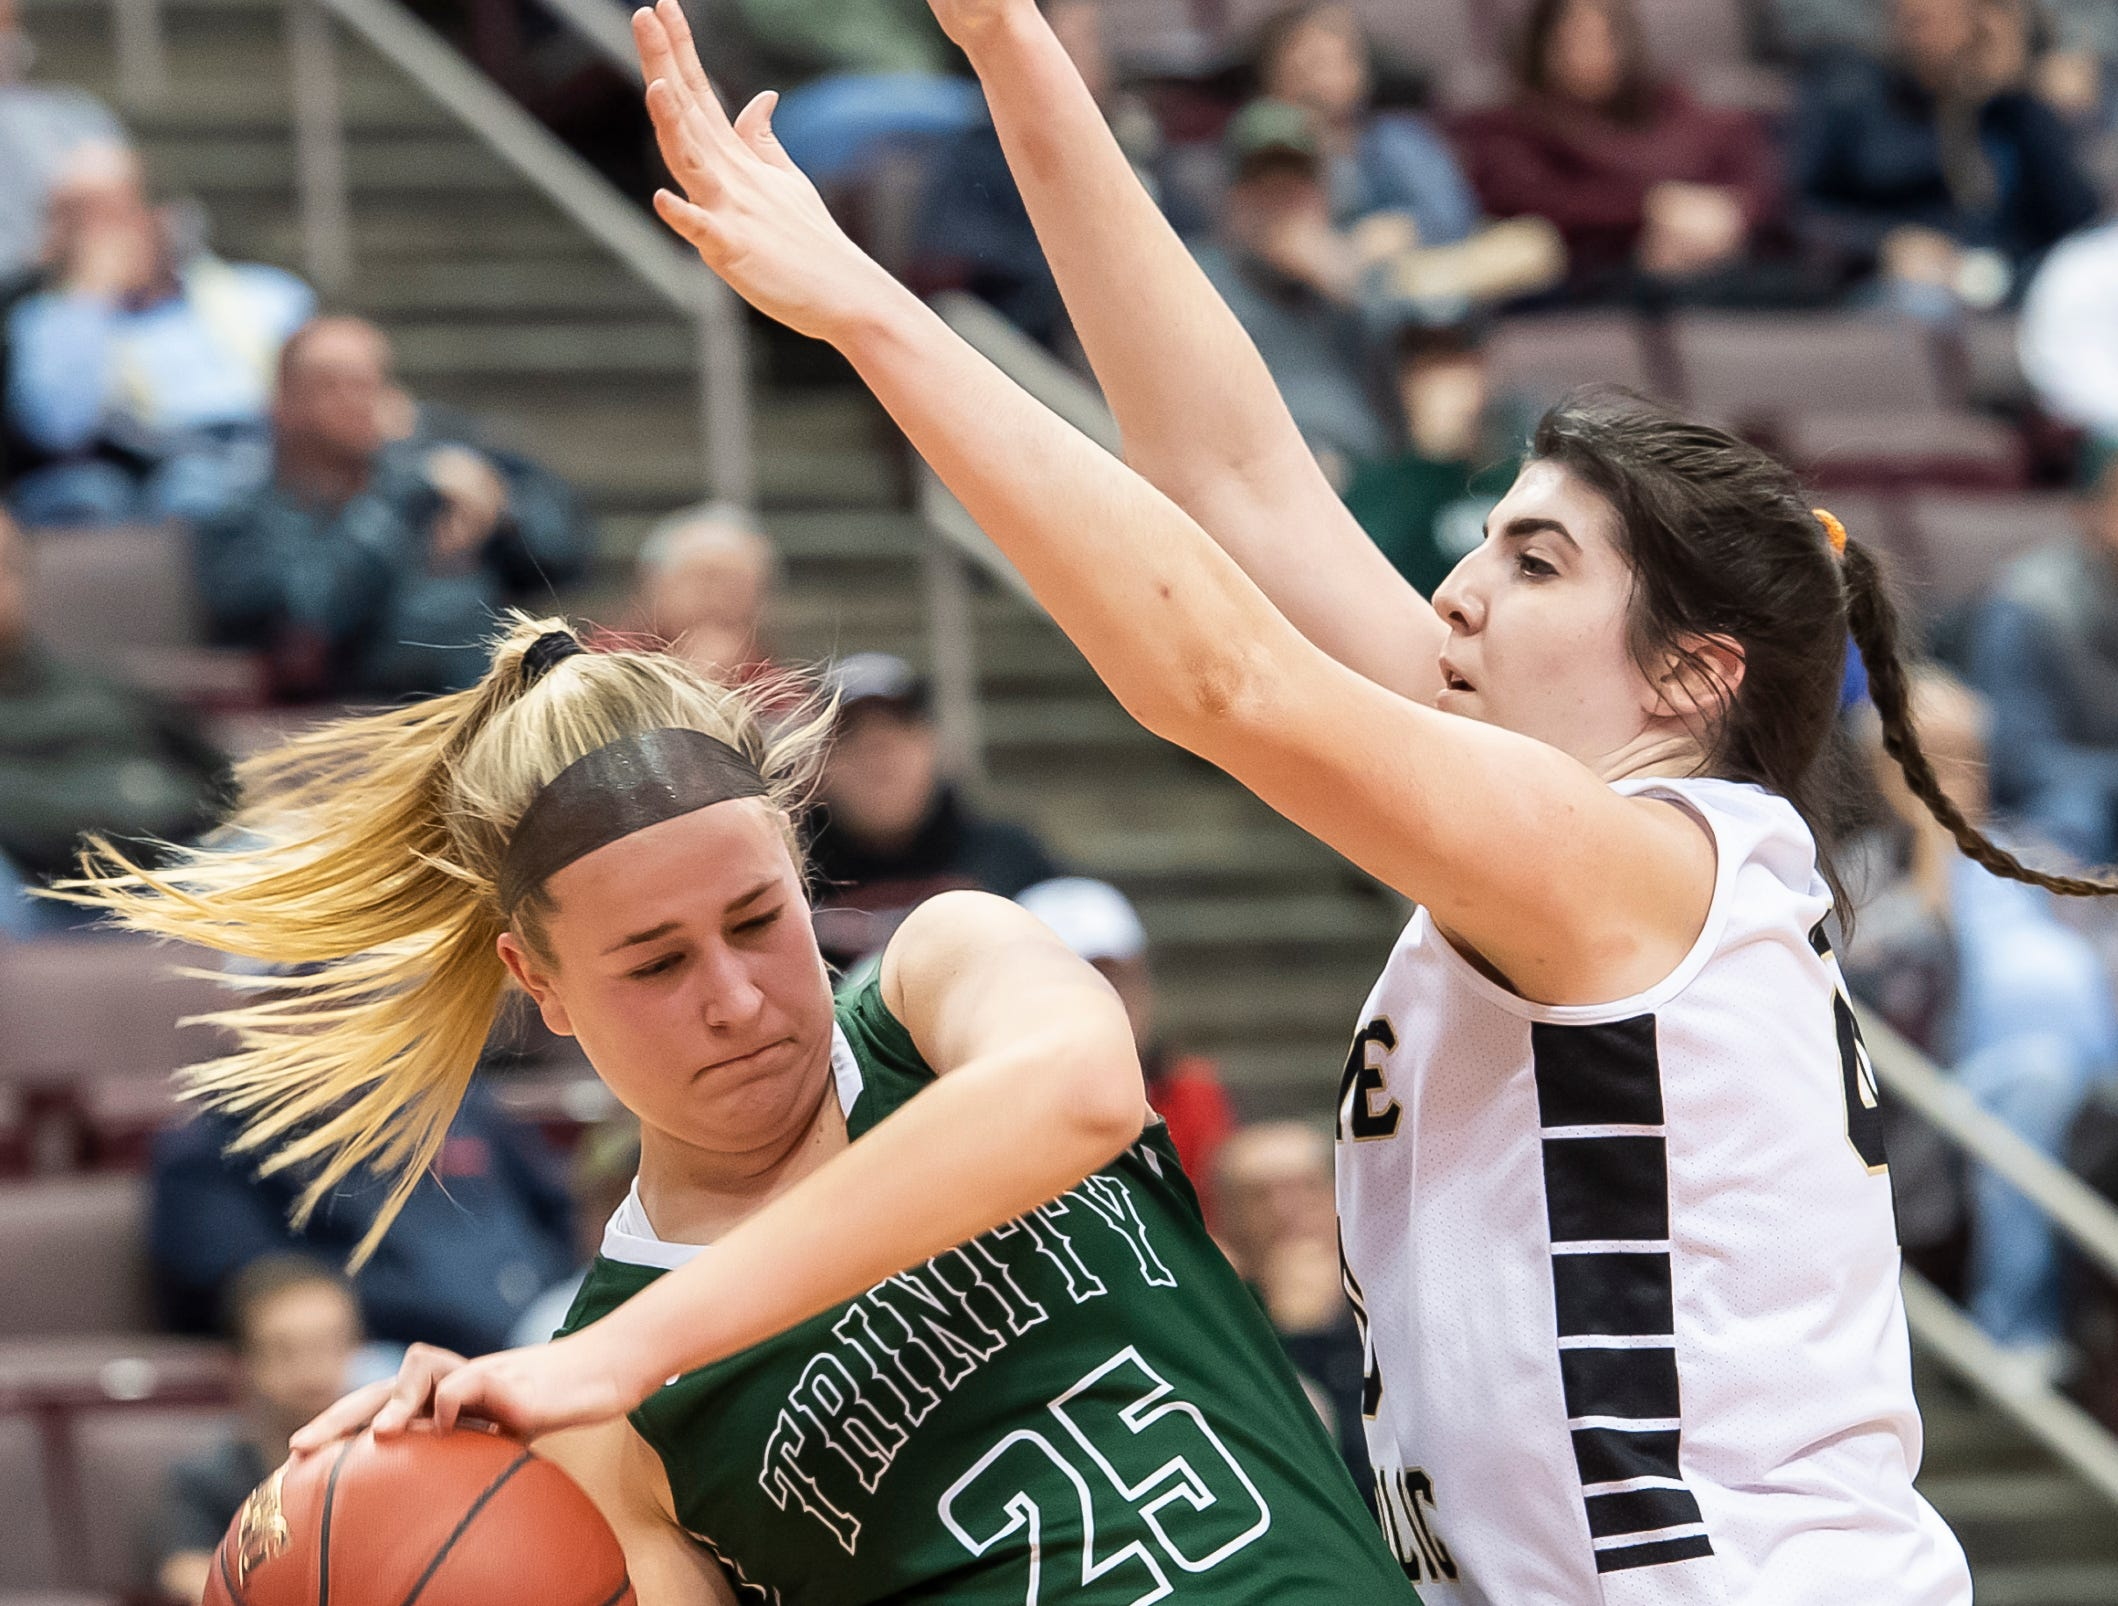 Delone Catholic's Bradi Zumbrum pressures Trinity's Lauren Trumpy during the District 3 3A girls championship game at the Giant Center in Hershey Wednesday, Feb. 27, 2019. The Squirettes fell 44-33.